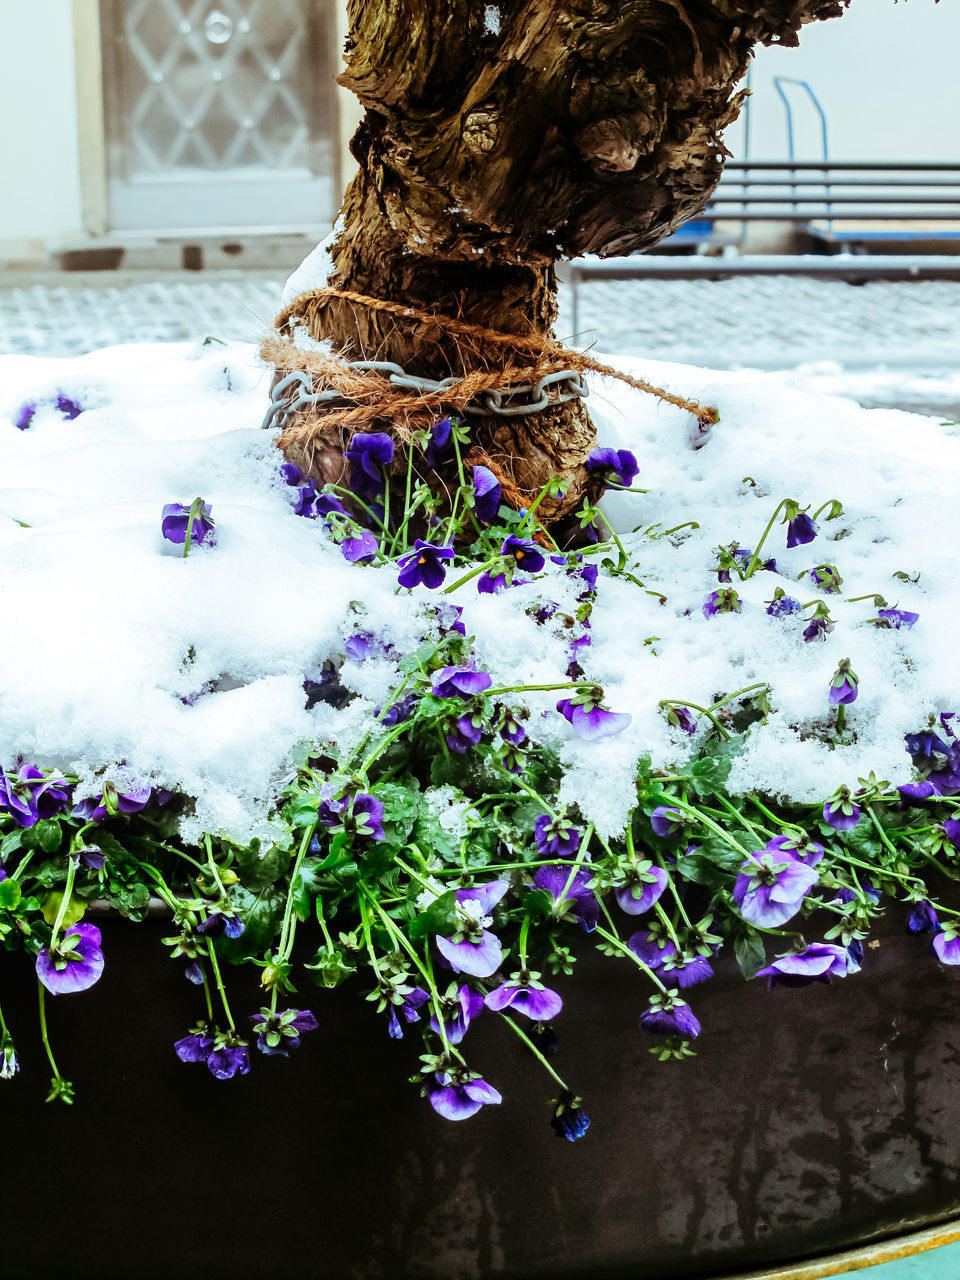 nature, flower, snow, growth, day, winter, cold temperature, beauty in nature, fragility, no people, outdoors, freshness, plant, close-up, tree